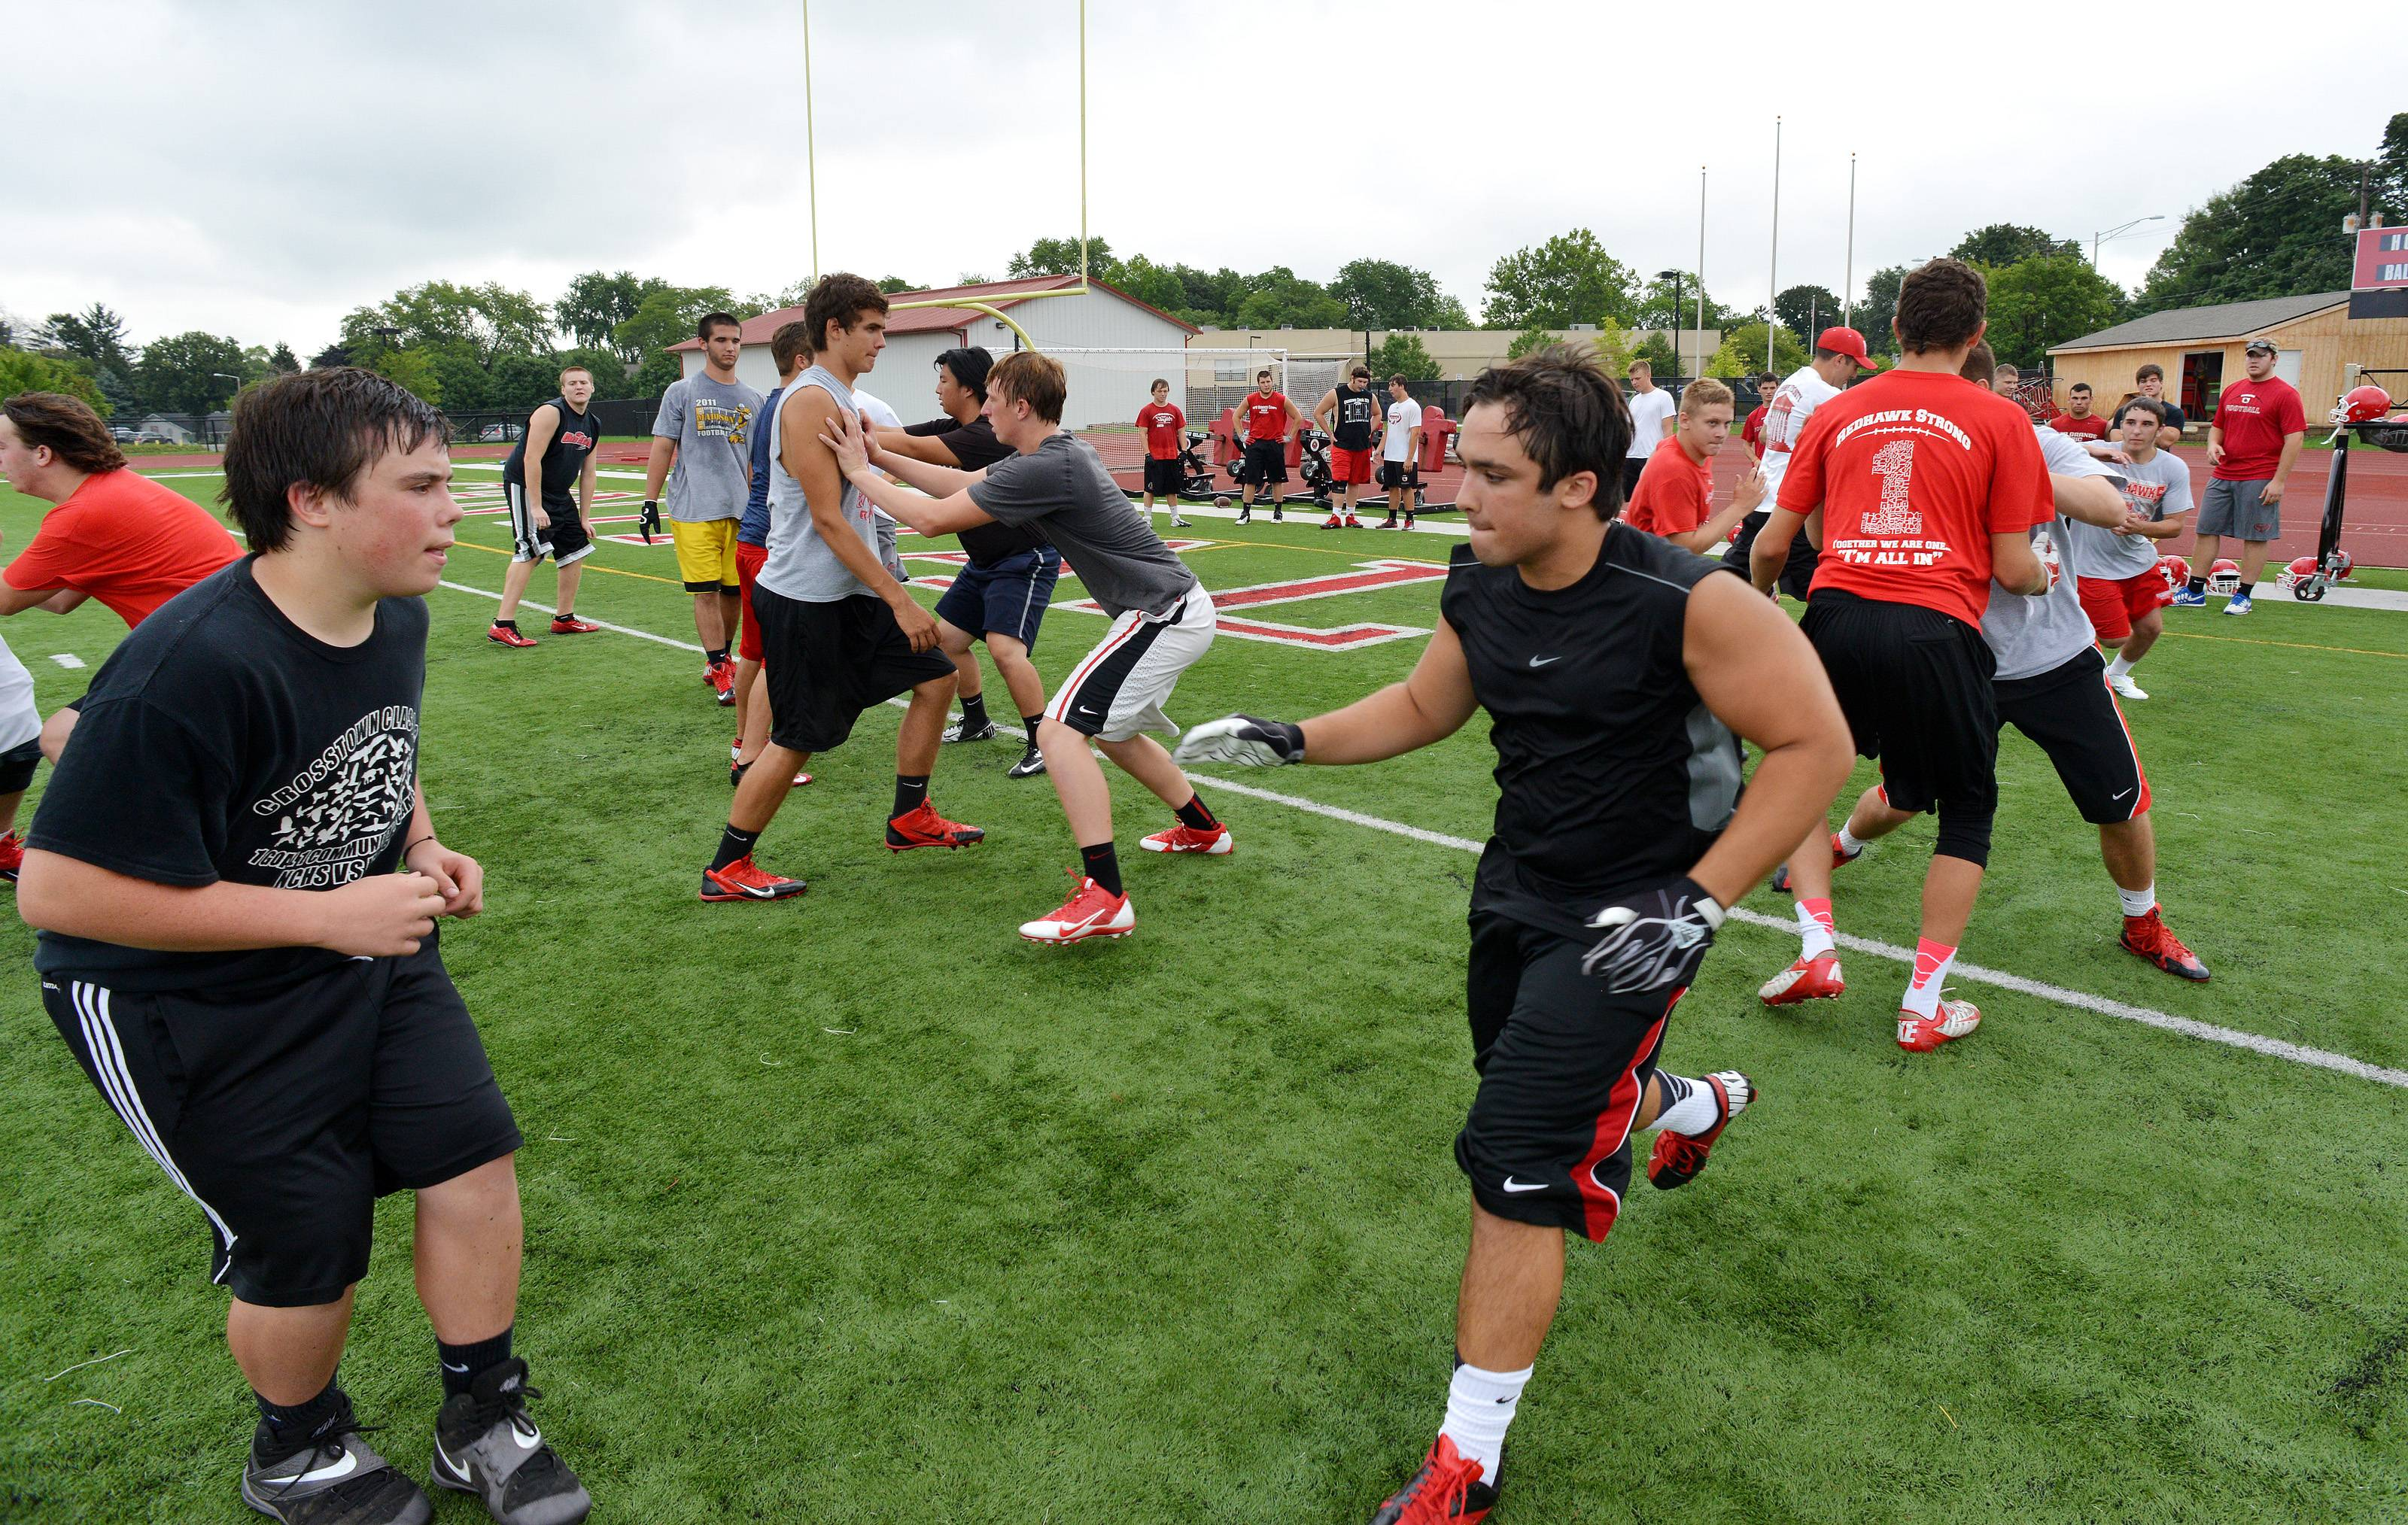 Naperville Central High School's football team works Monday out on the first official day of practice. Linemen face off against each other in drills.